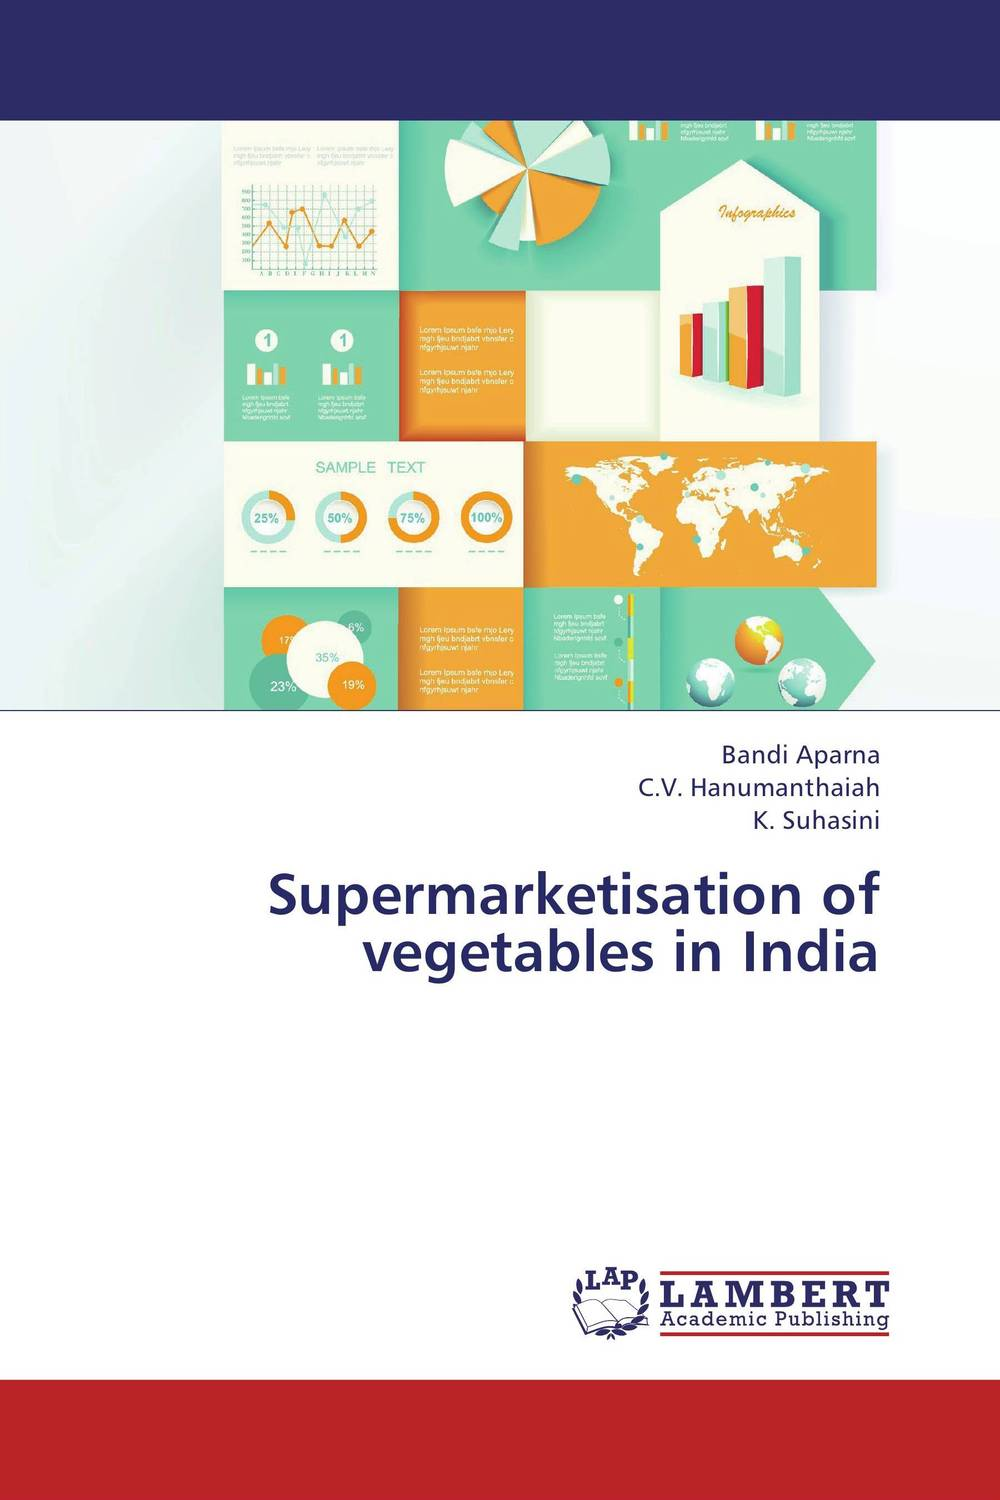 Supermarketisation of vegetables in India deepita chakravarty expansion of markets and women workers in india